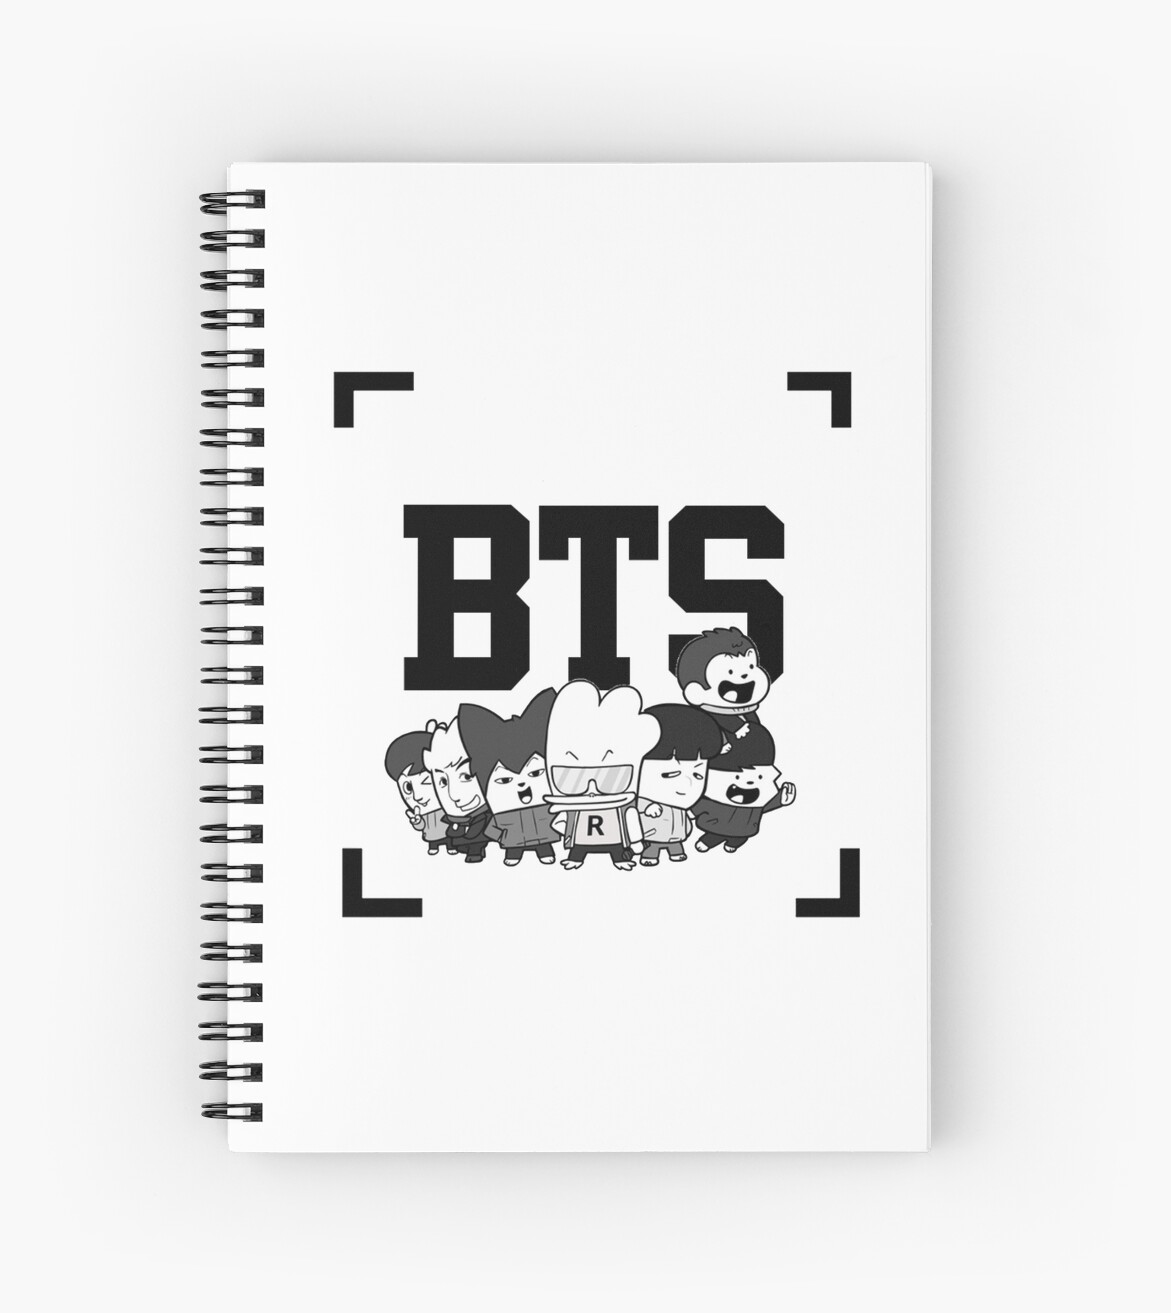 Quot Bts Hip Hop Monsters Quot Spiral Notebooks By Lisa98 Redbubble